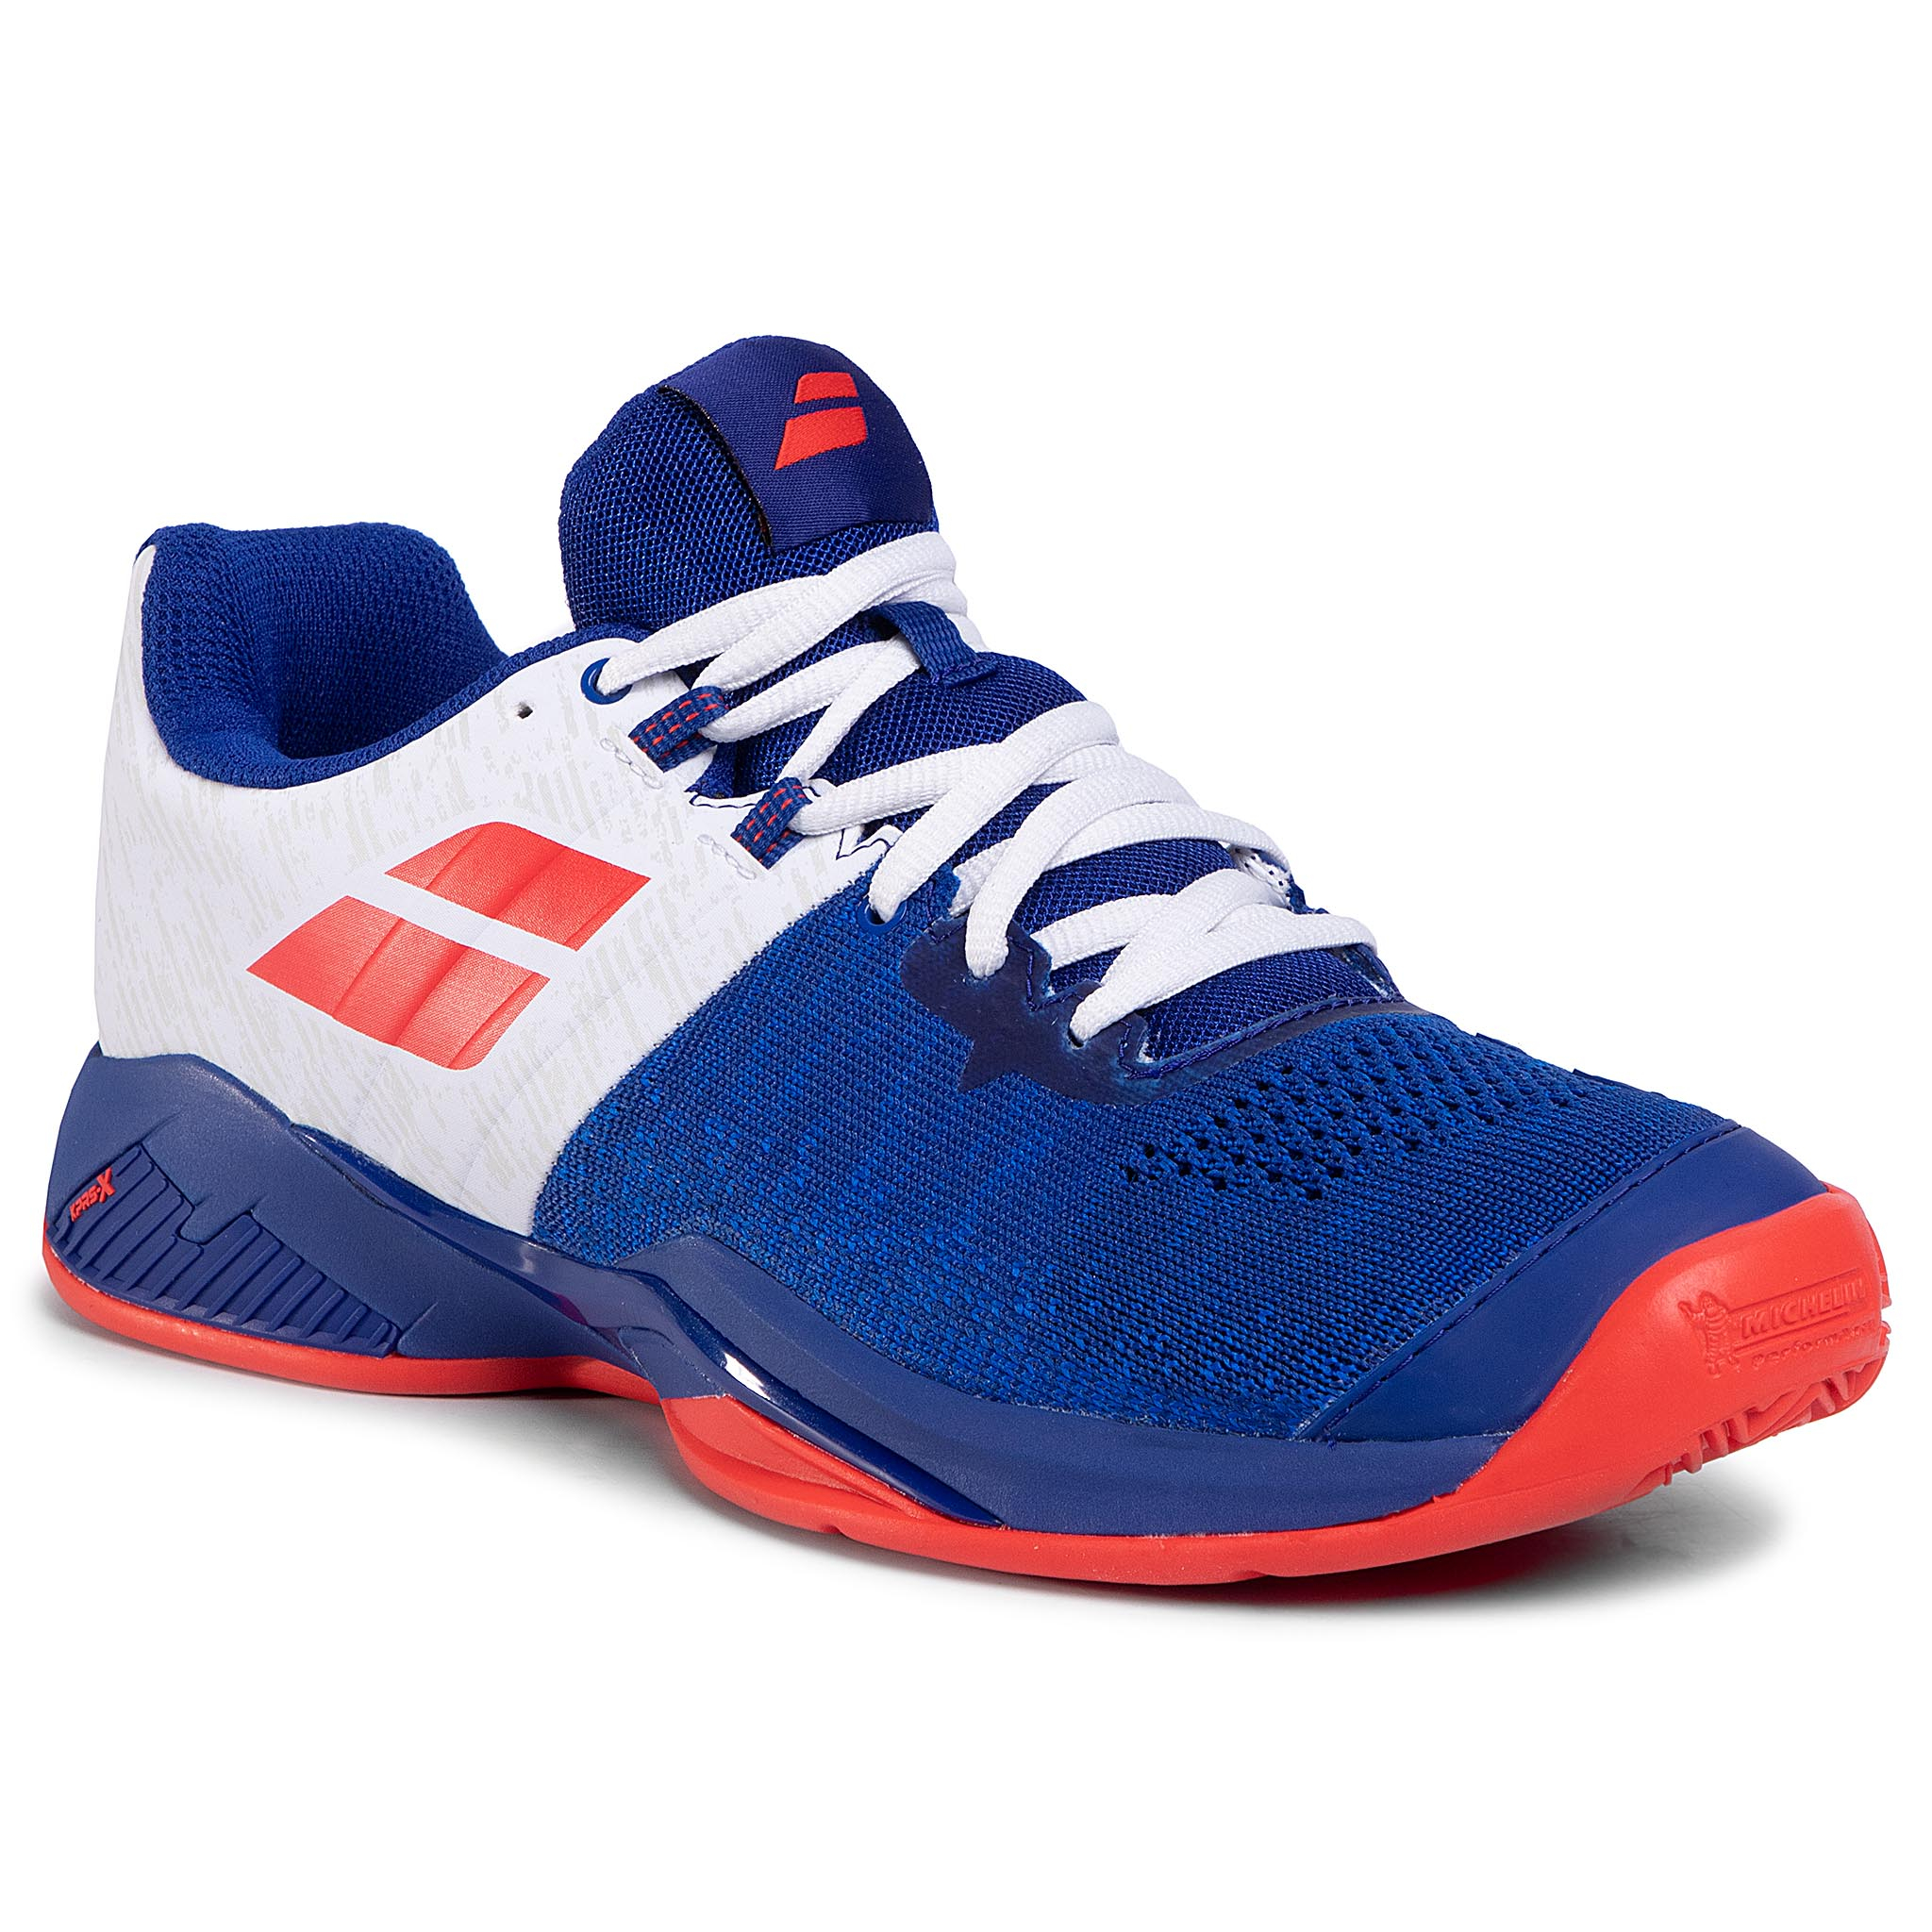 Pantofi Babolat - Propulse Blast Clay Men 30s20446 Imperial Blue/White imagine epantofi.ro 2021